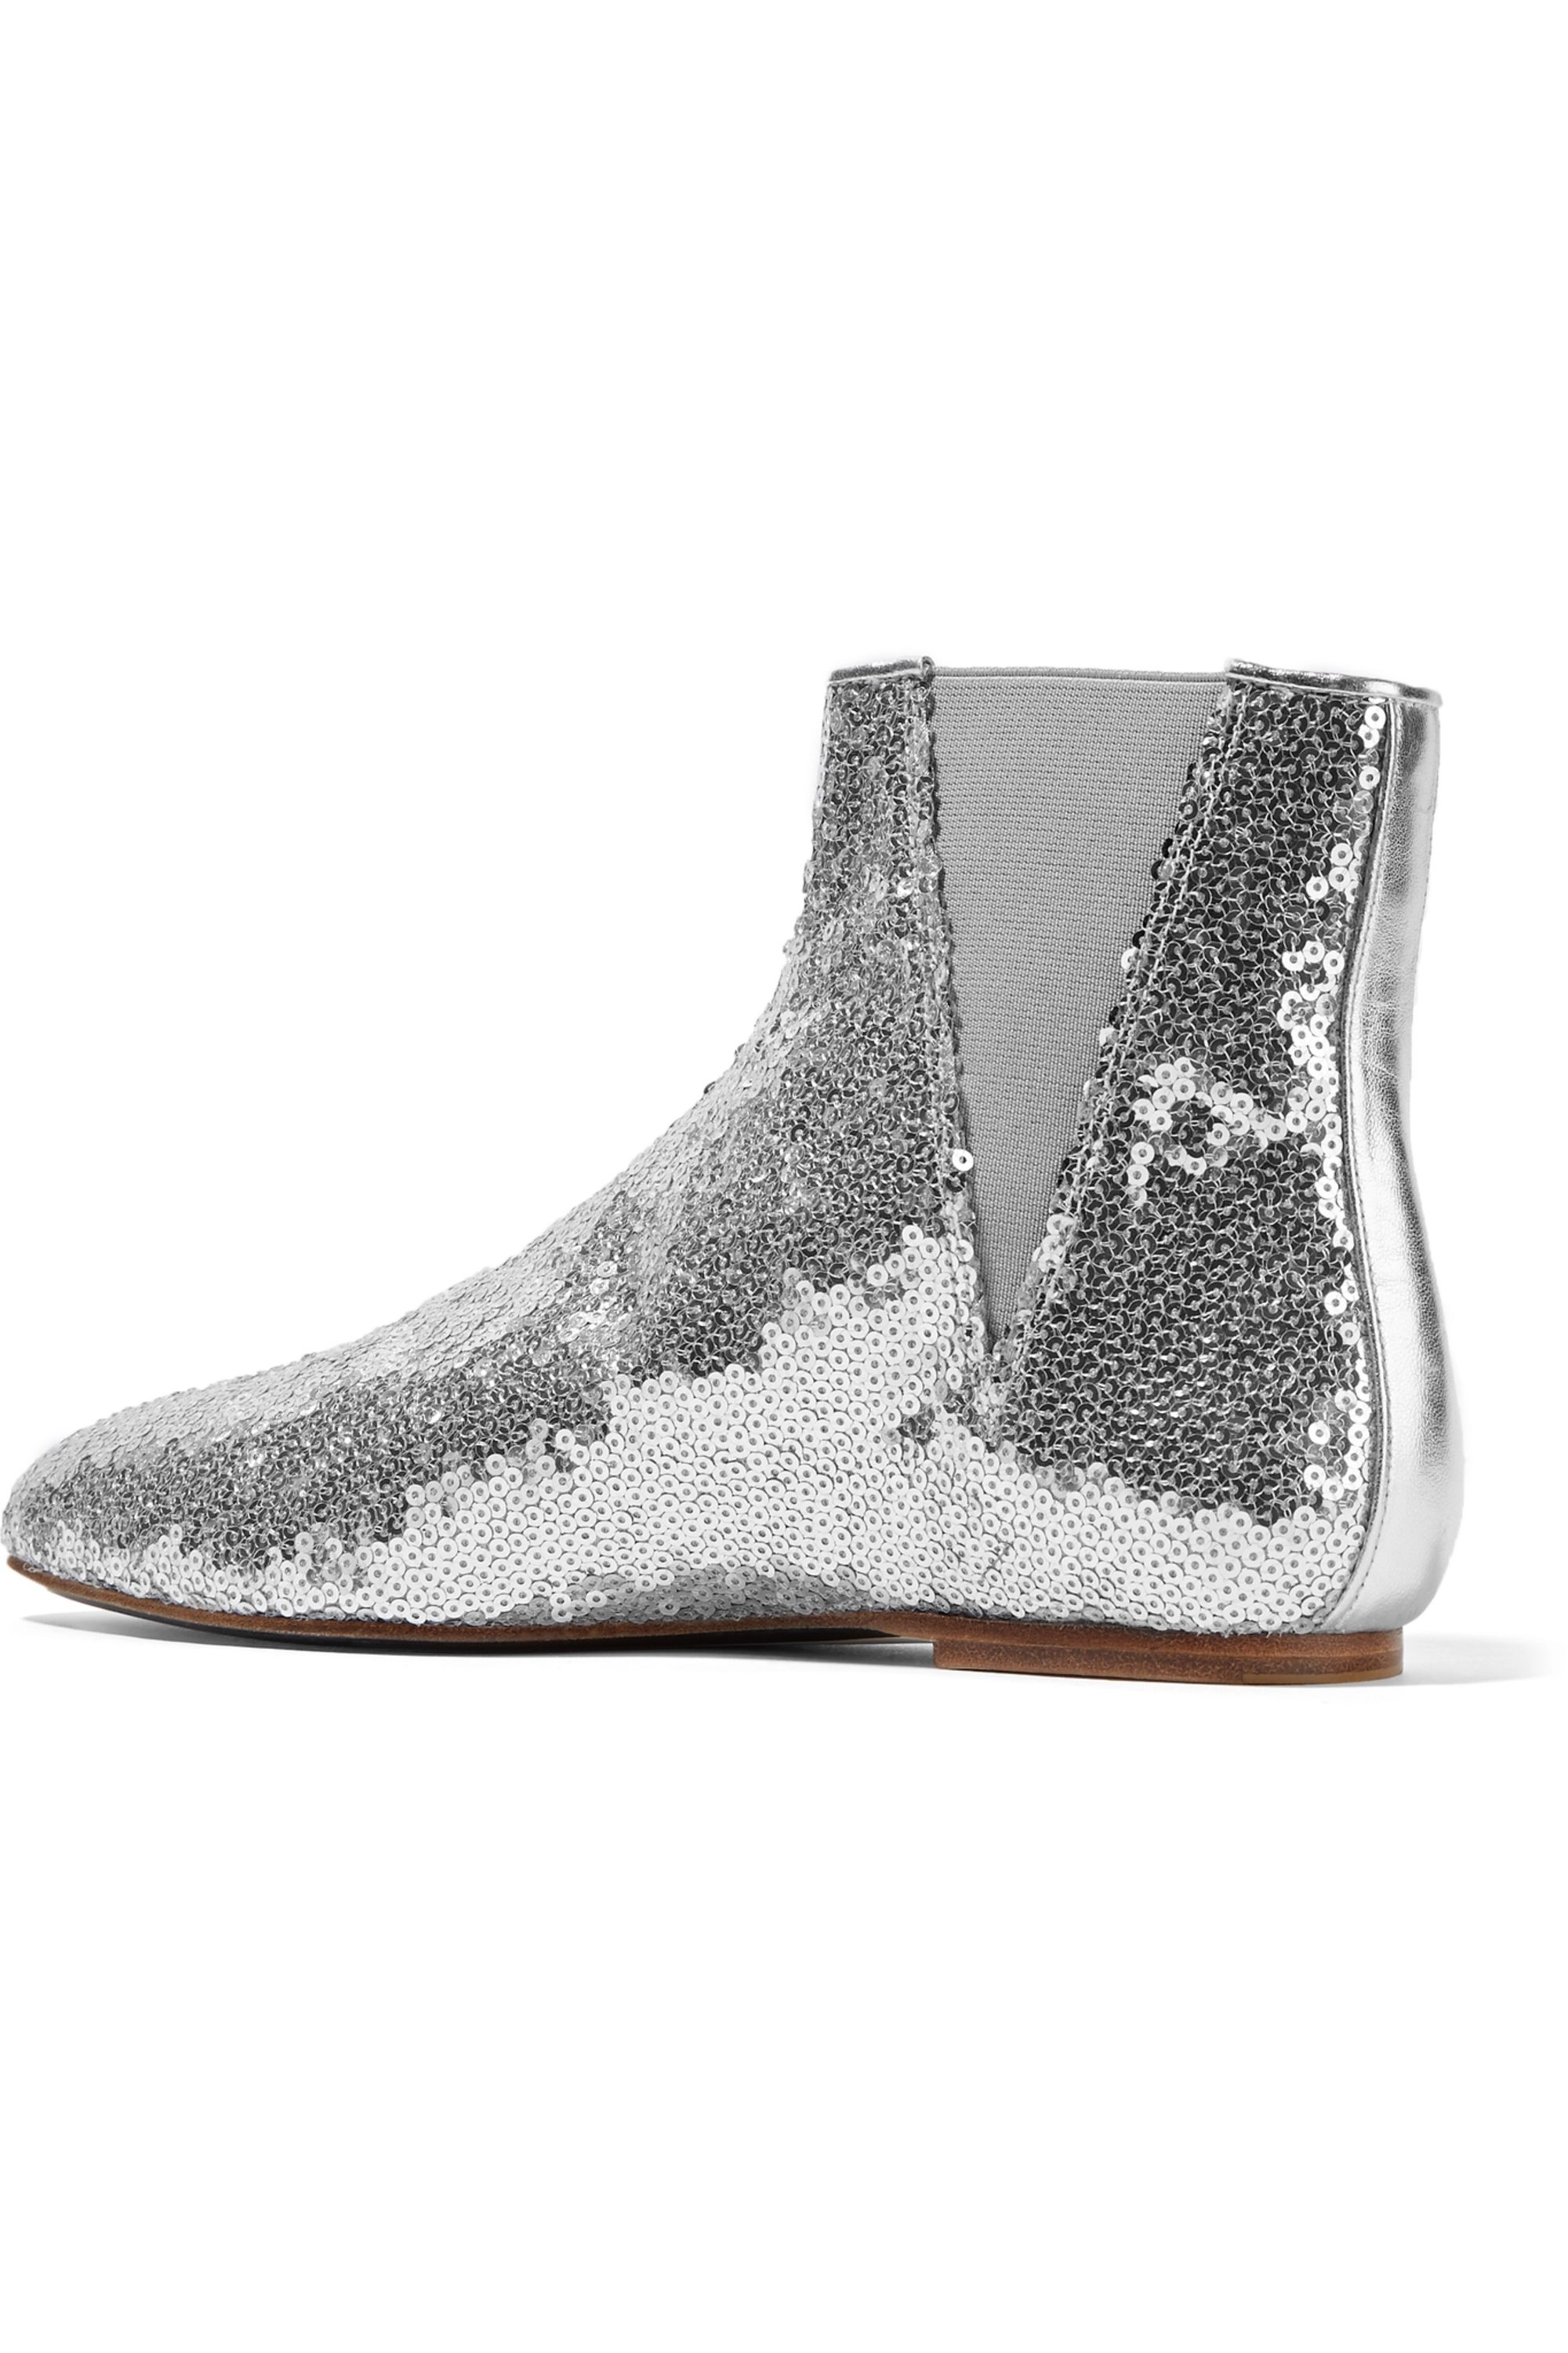 Loewe Sequined leather Chelsea boots